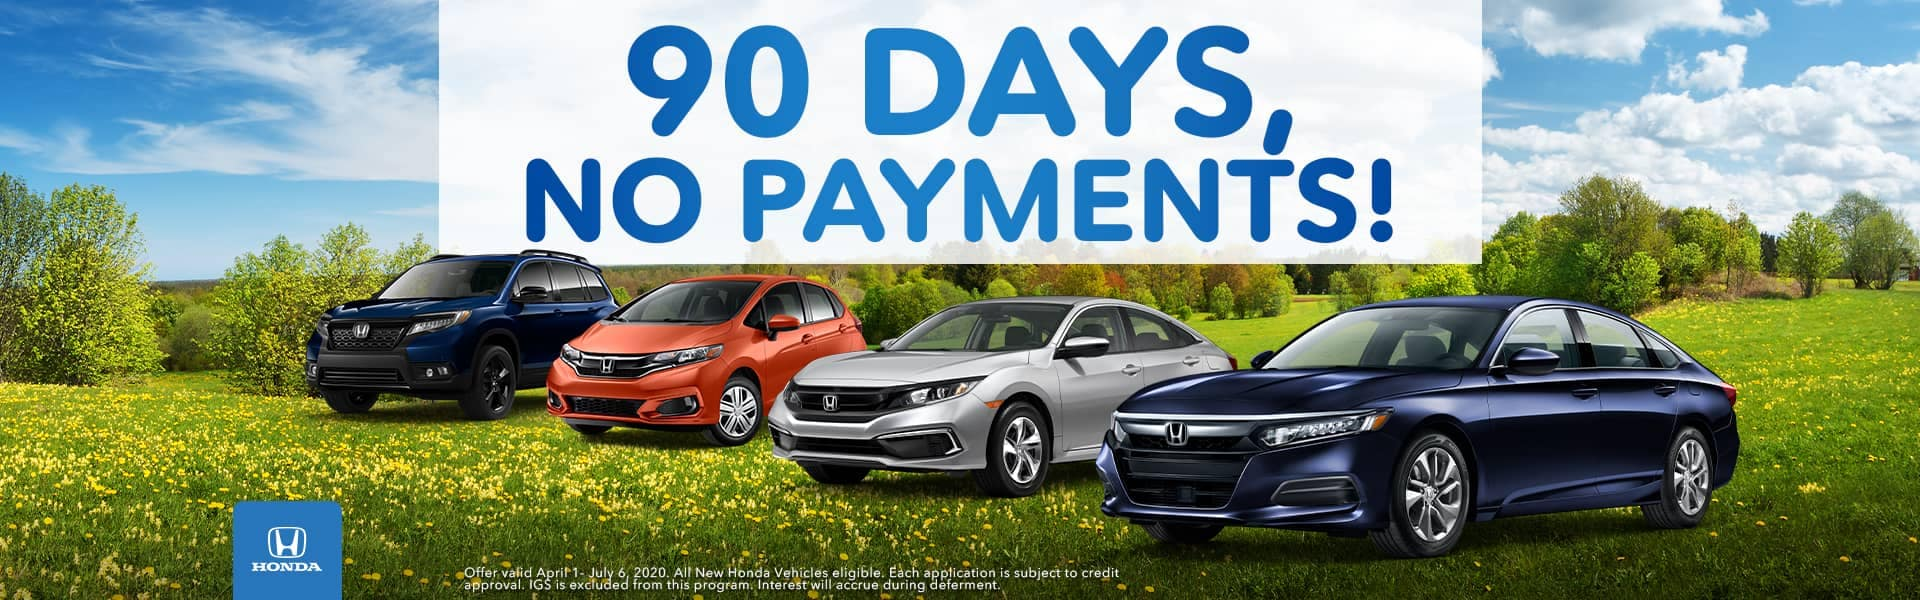 90 Days, No Payments!